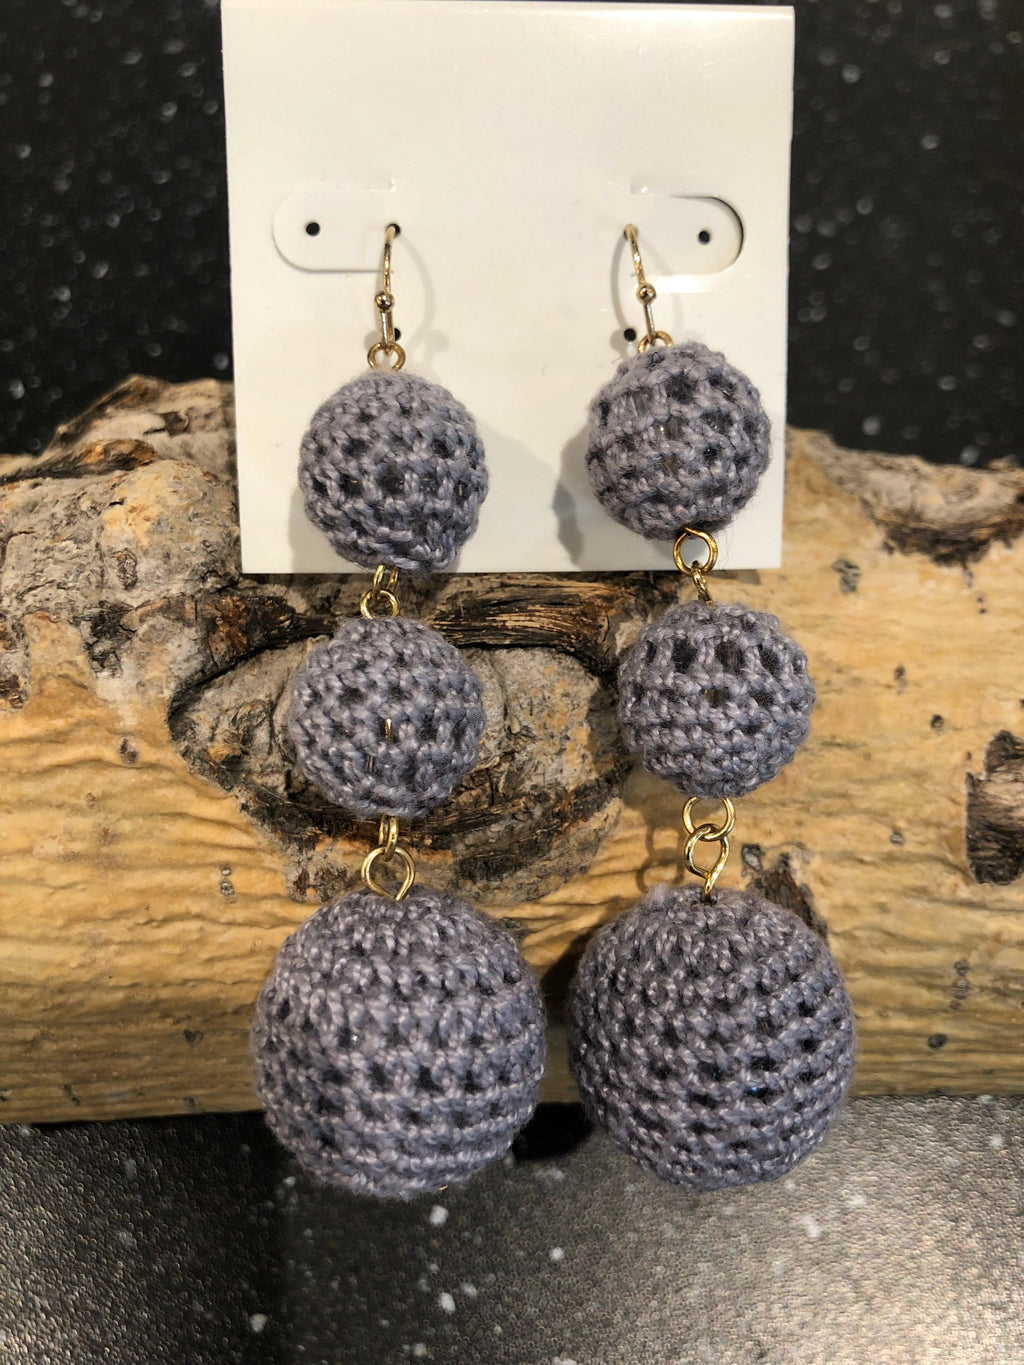 Garbo Multi Balls Drop Earrings